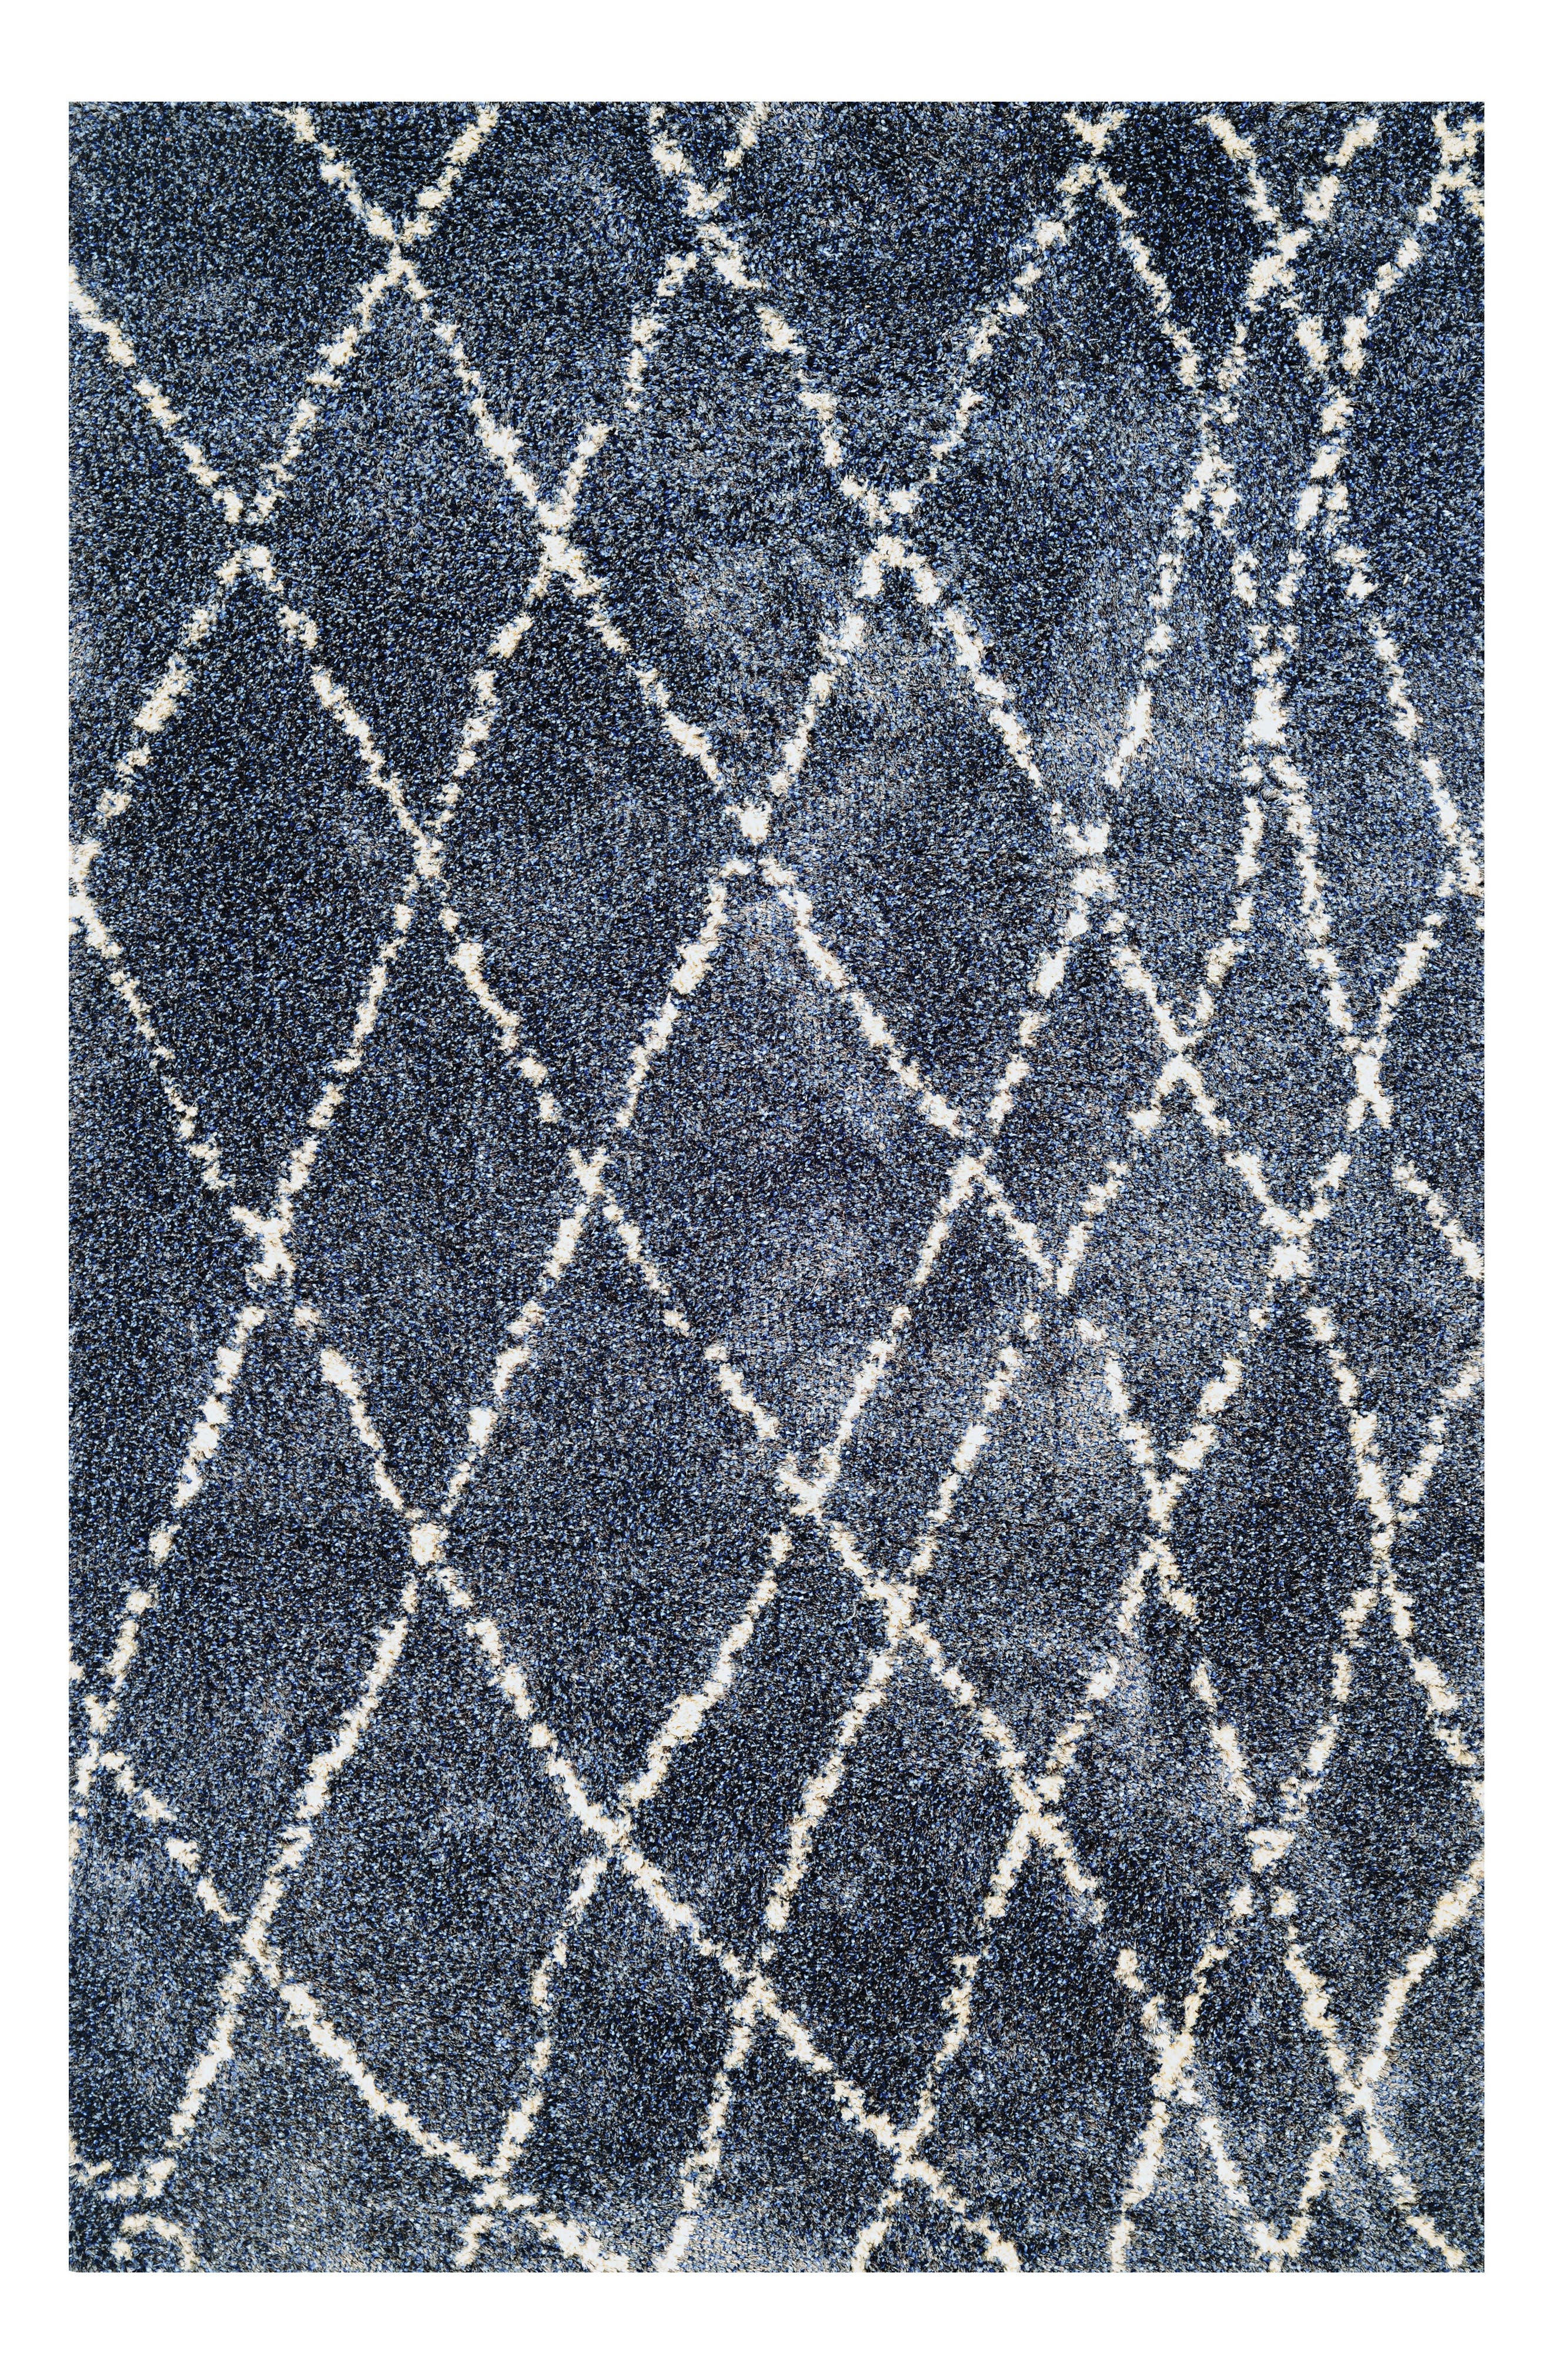 Whistler Area Rug,                             Main thumbnail 1, color,                             400